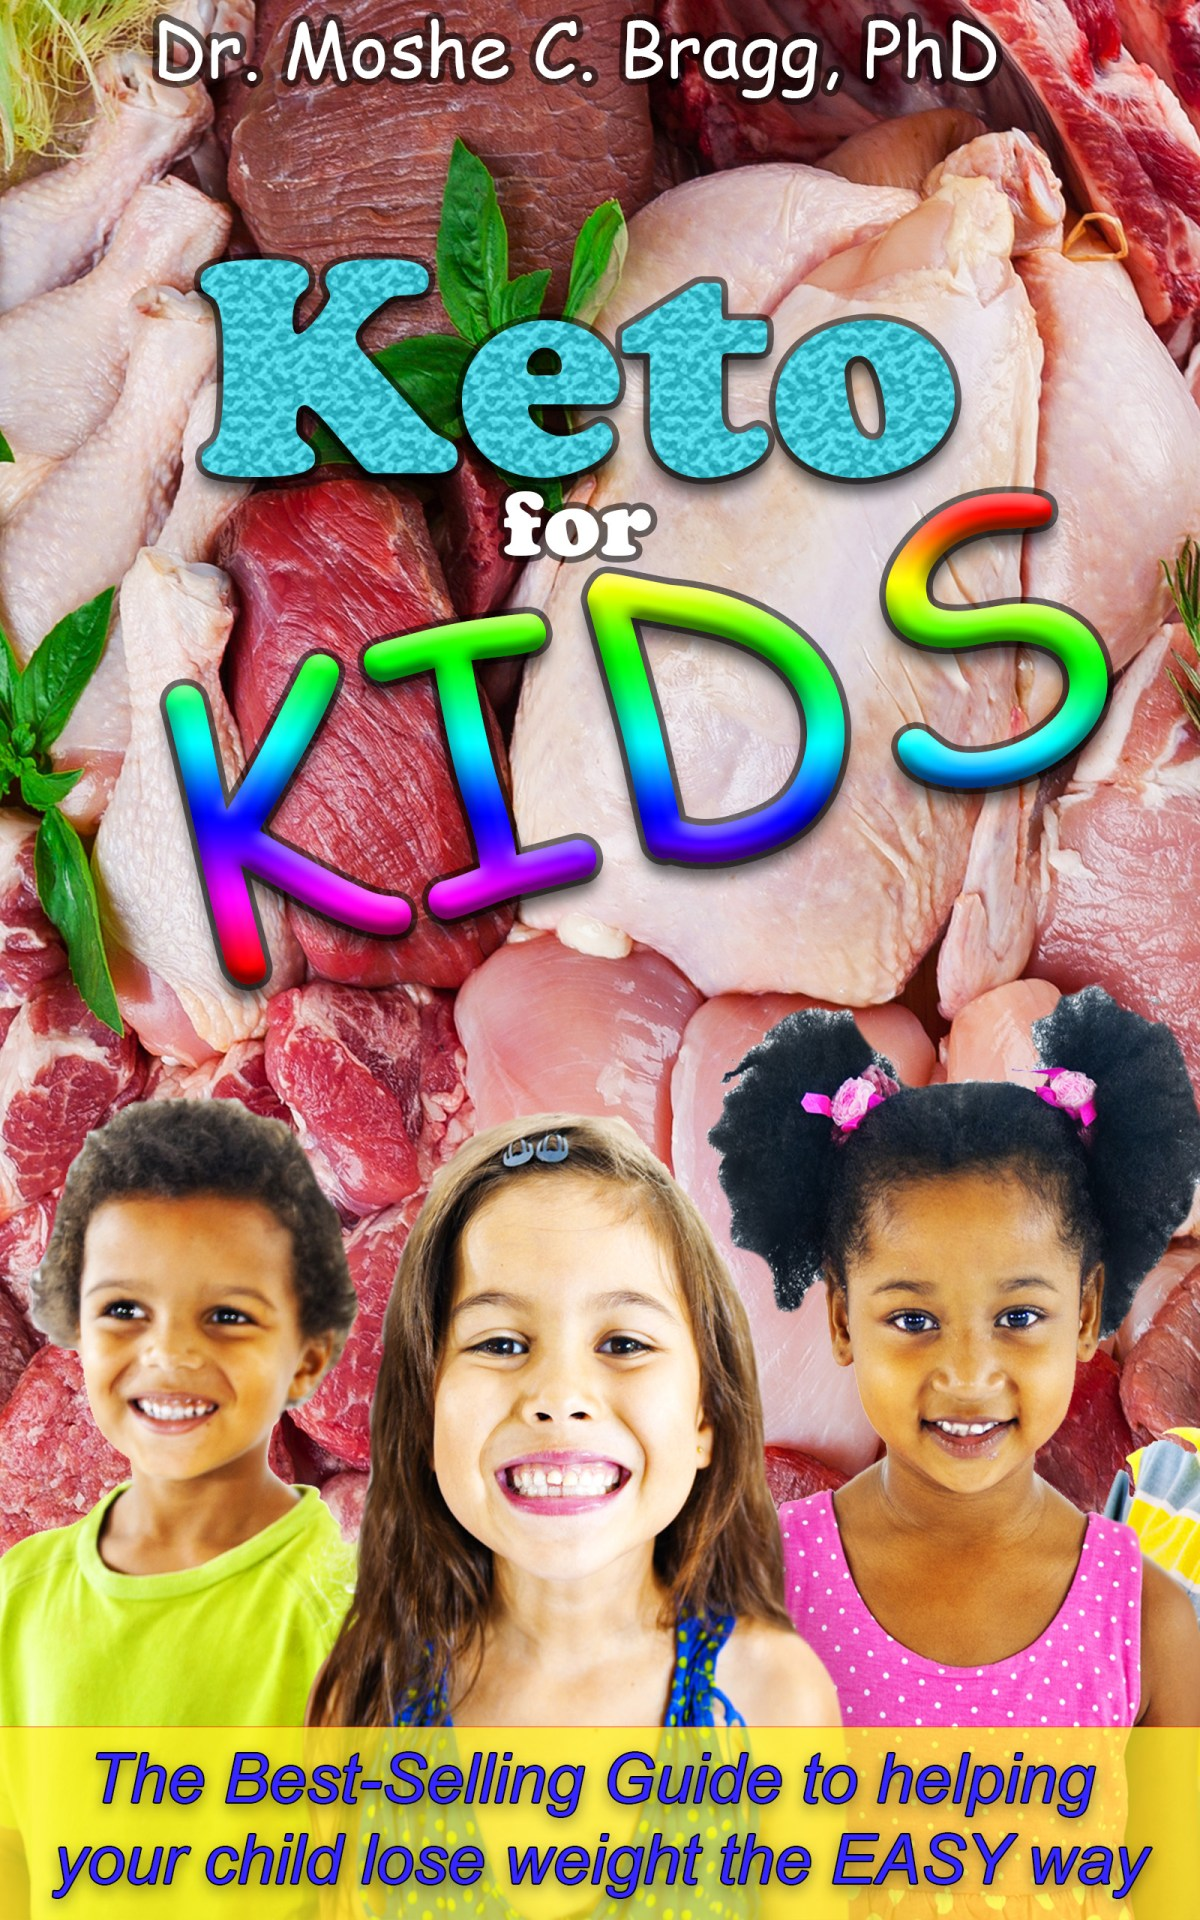 Keto for Kids!